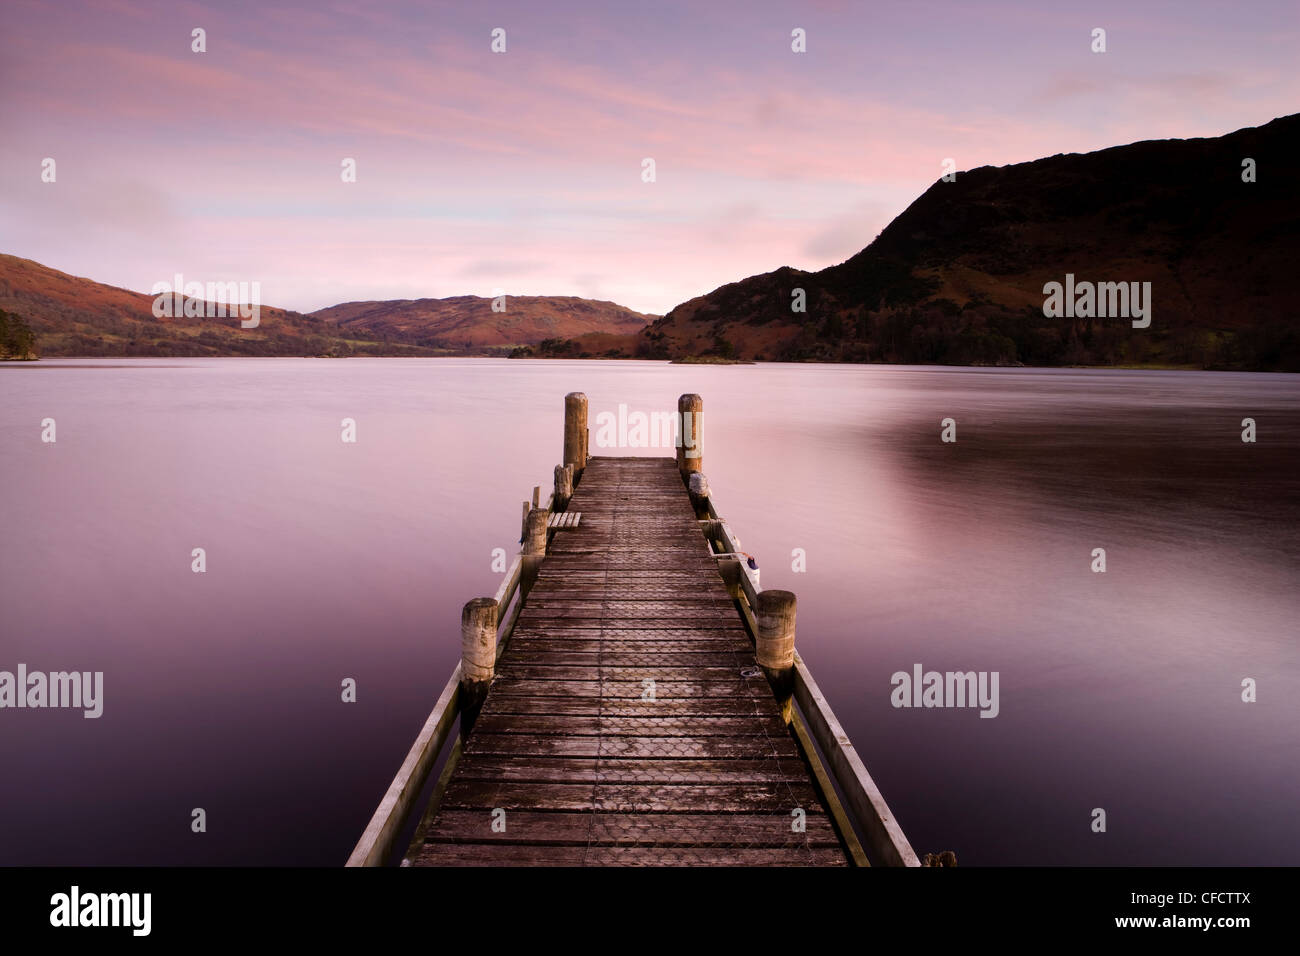 d6be1686d4 Jetty on Ullswater at dawn, Glenridding Village, Lake District National  Park, Cumbria,